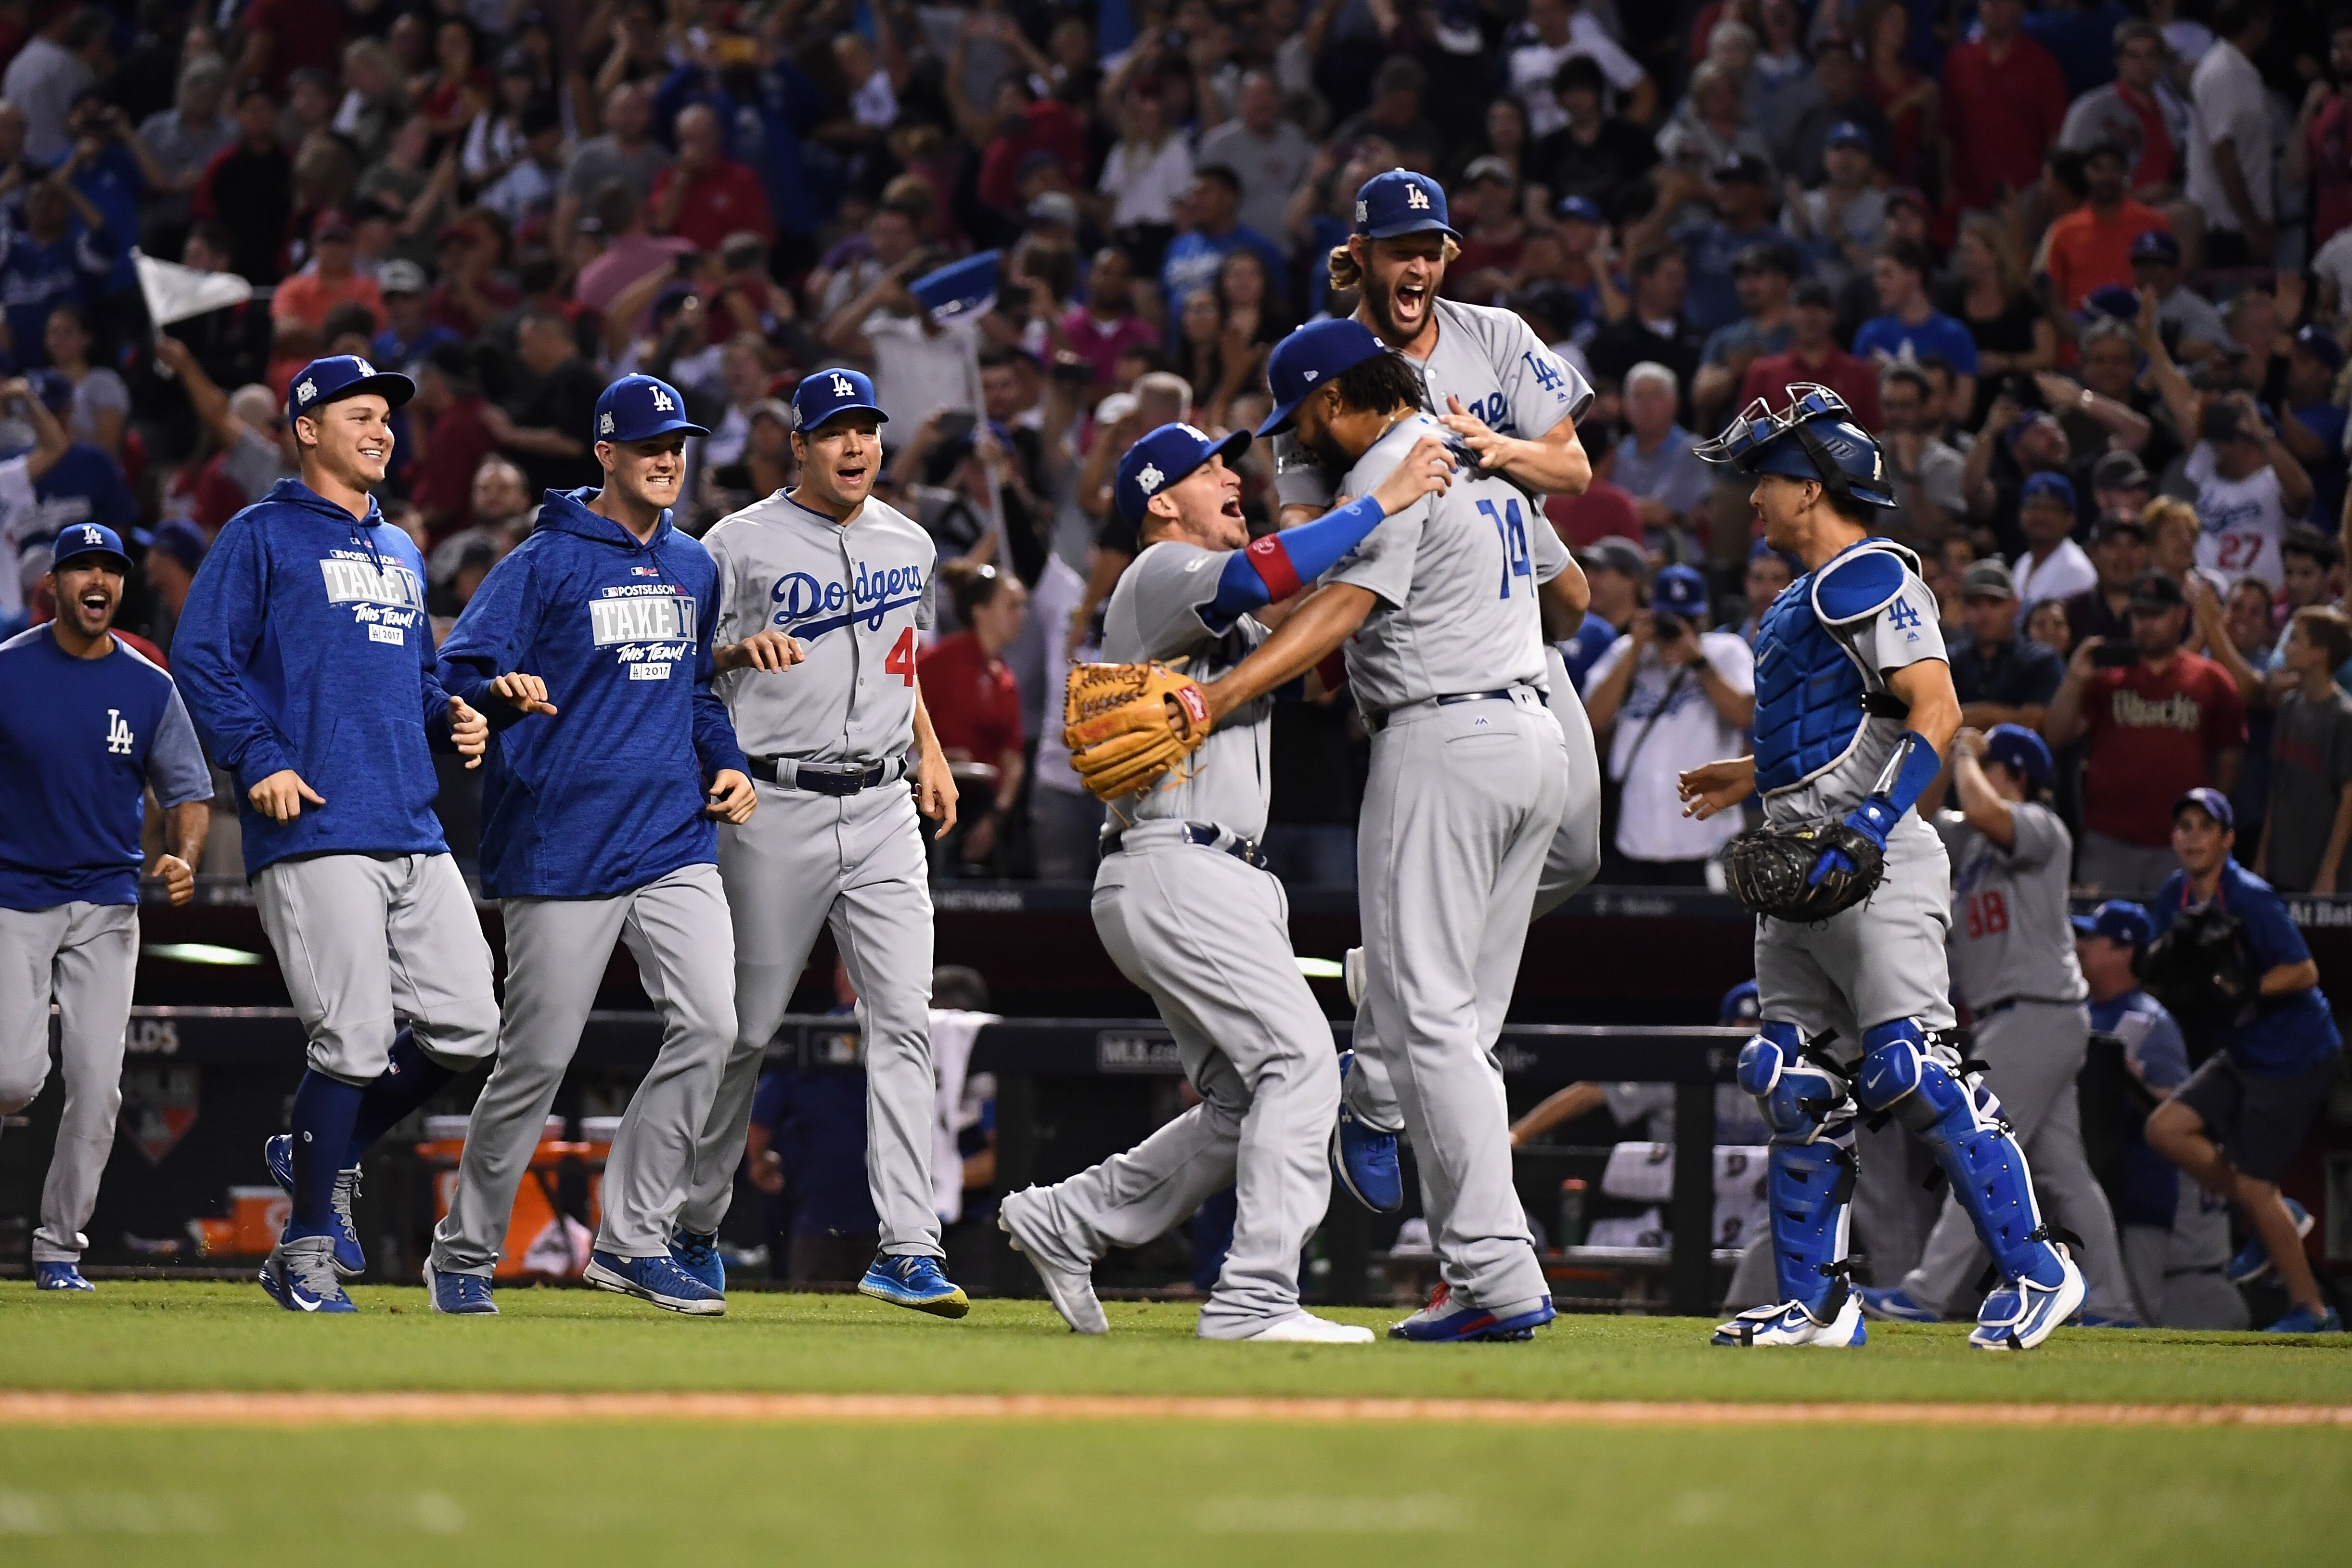 Dodgers: NLDS sweep puts the pitching staff in perfect